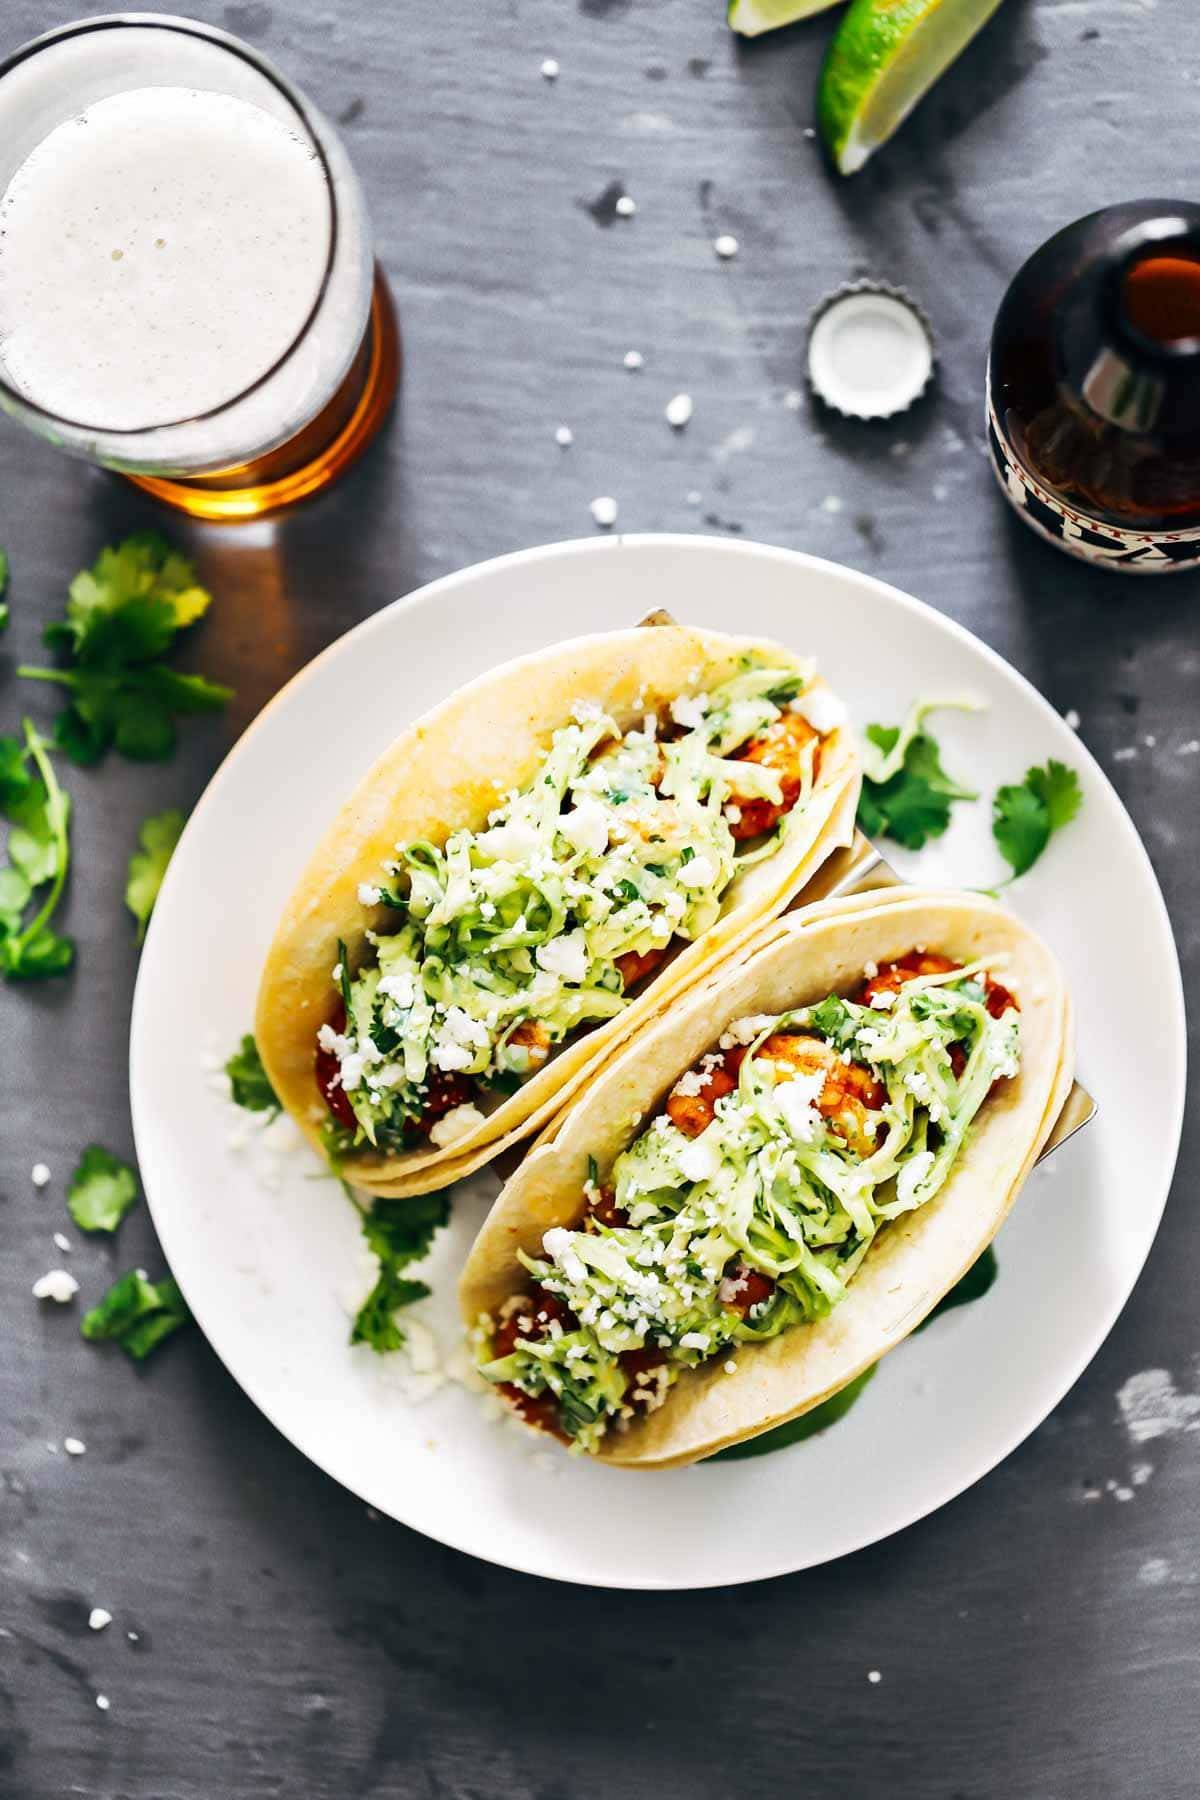 Spicy Shrimp Tacos in taco holders with a glass of beer.